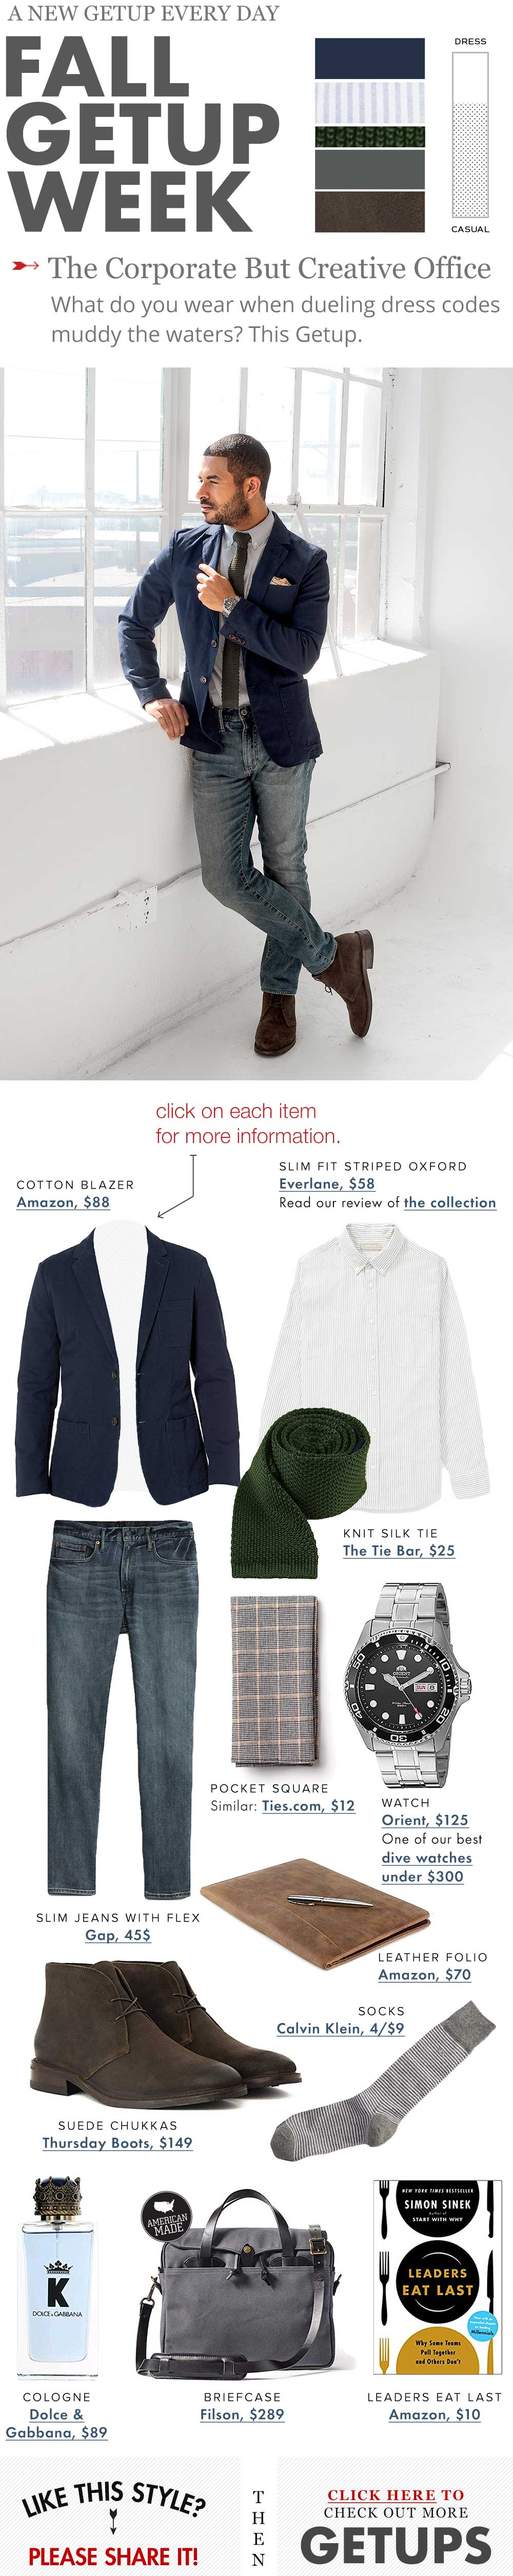 corporate creative office outfit cotton navy blazer knit tie striped shirt suede chukkas the getup